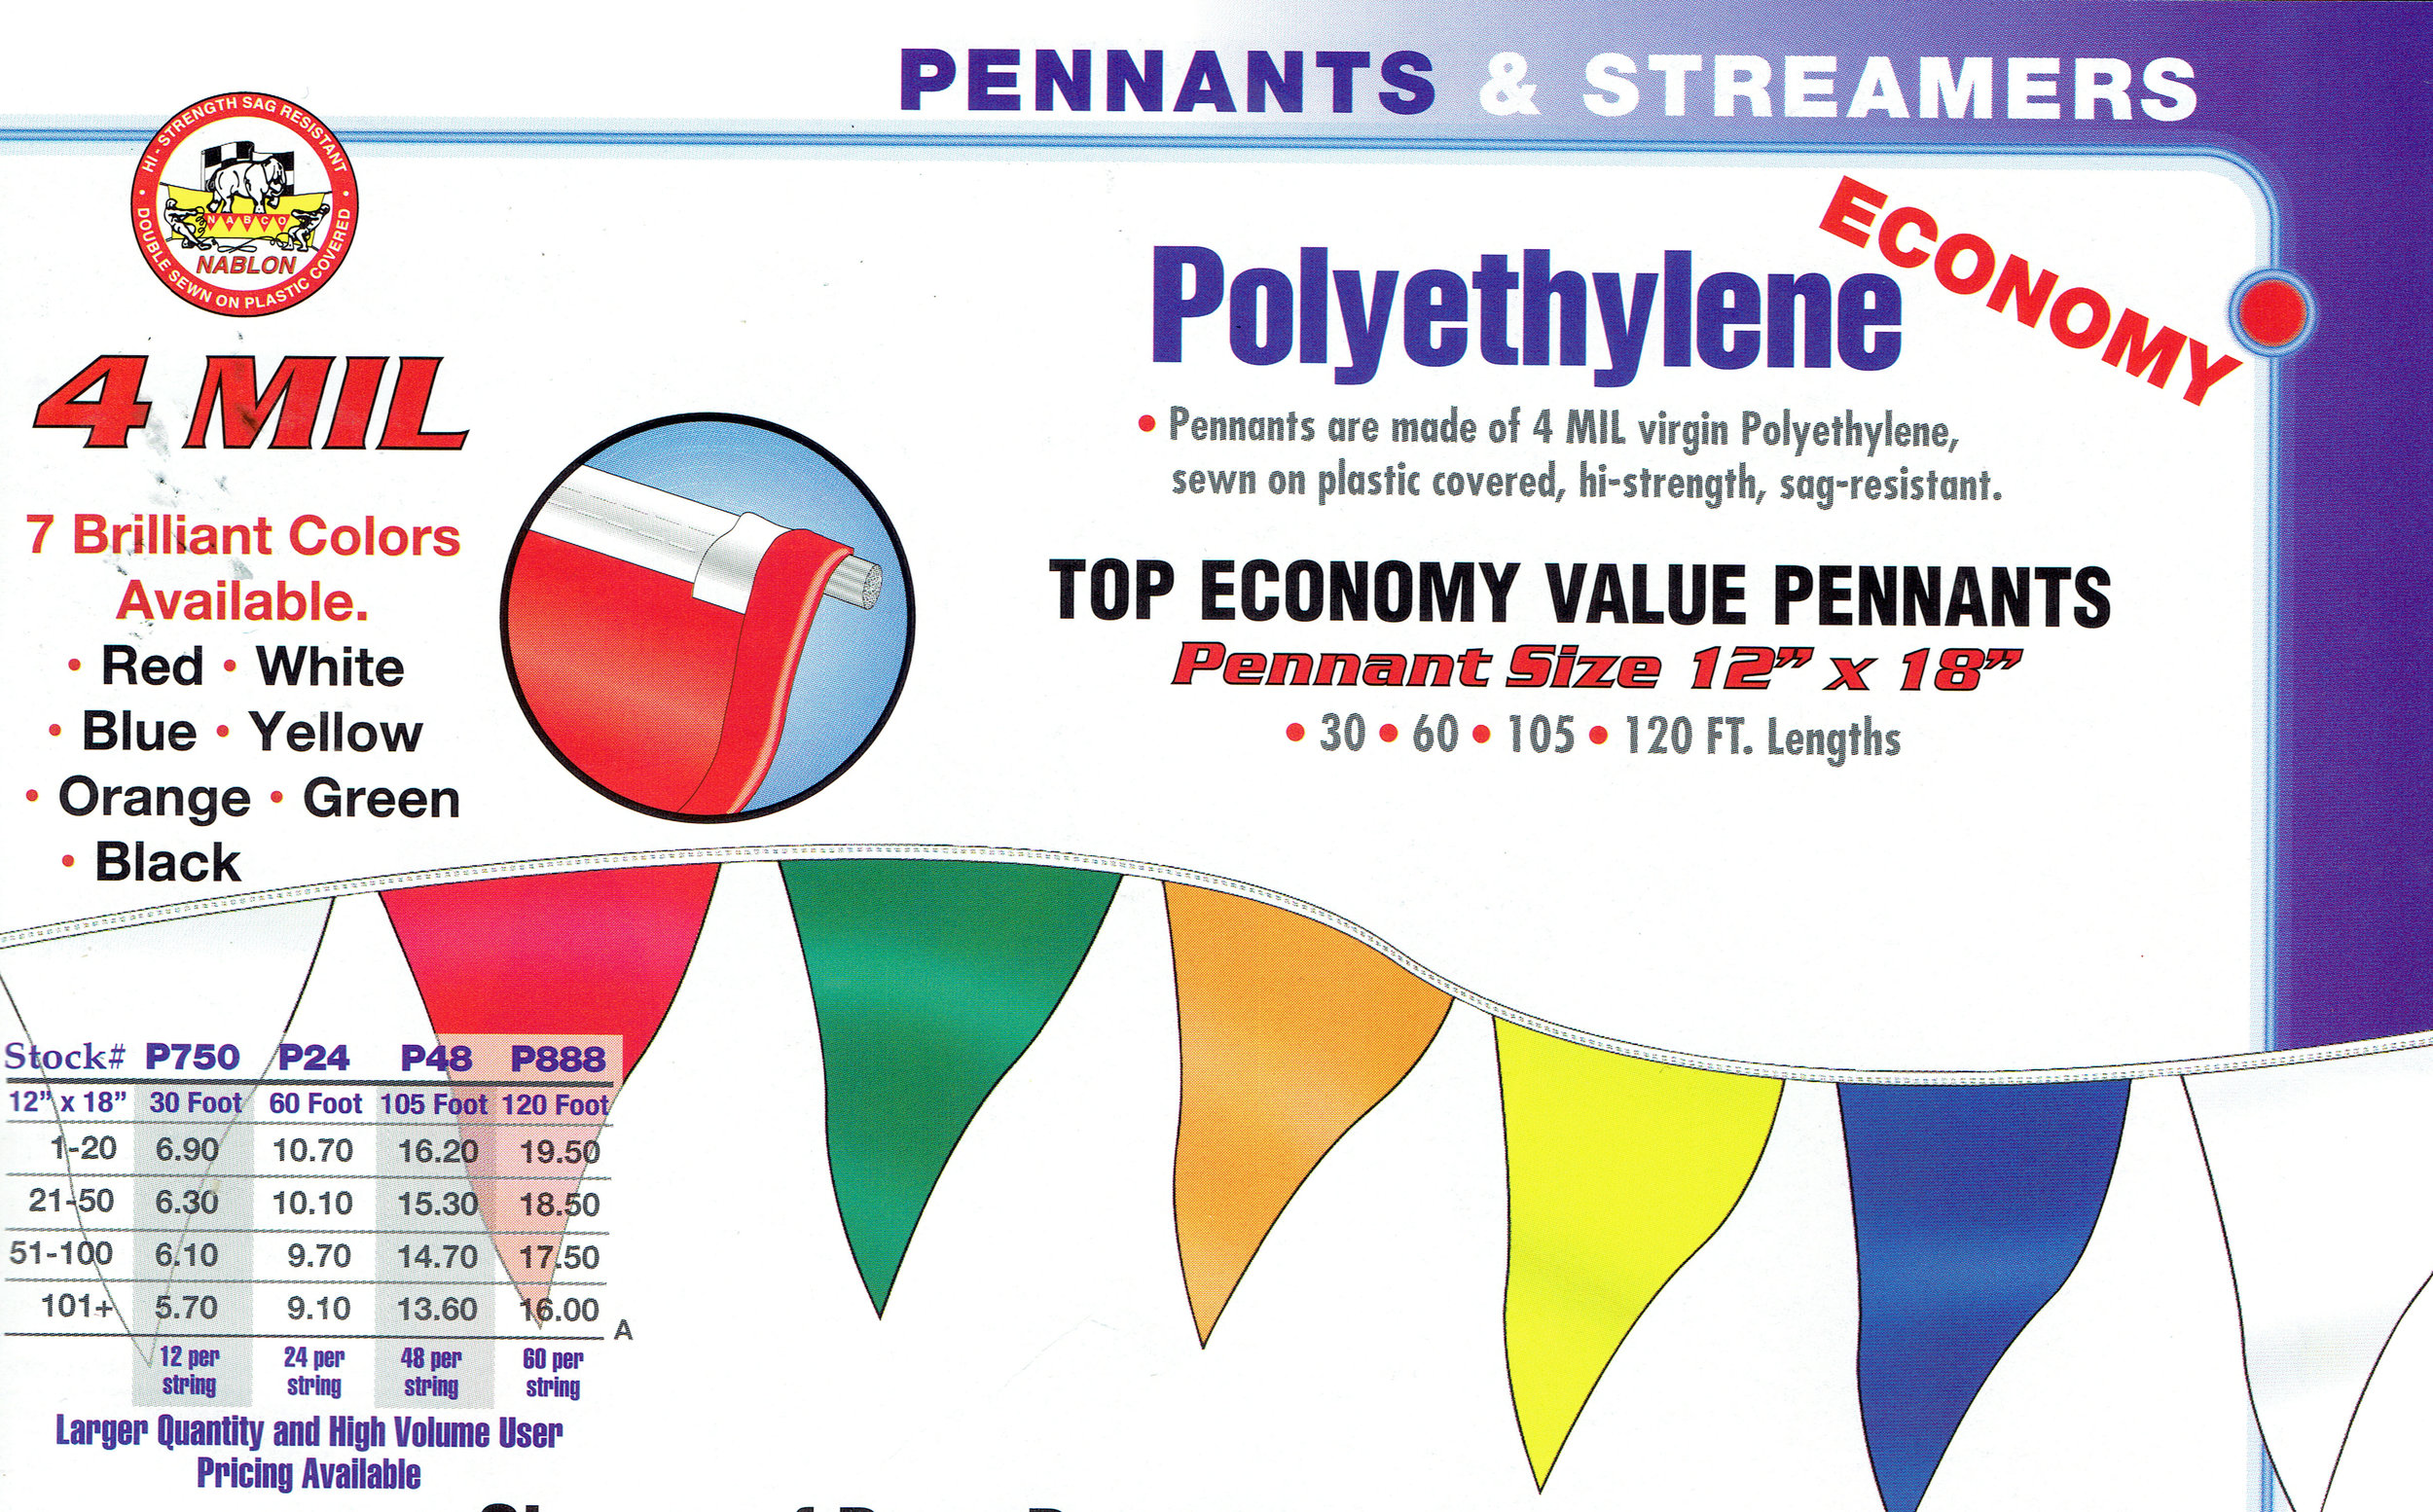 FOR OUR FULL CATALOG GO TO: xyzbanner.com - OR CALL US:  504 837 8420EMAIL:  PENNANT700@YAHOO.COM